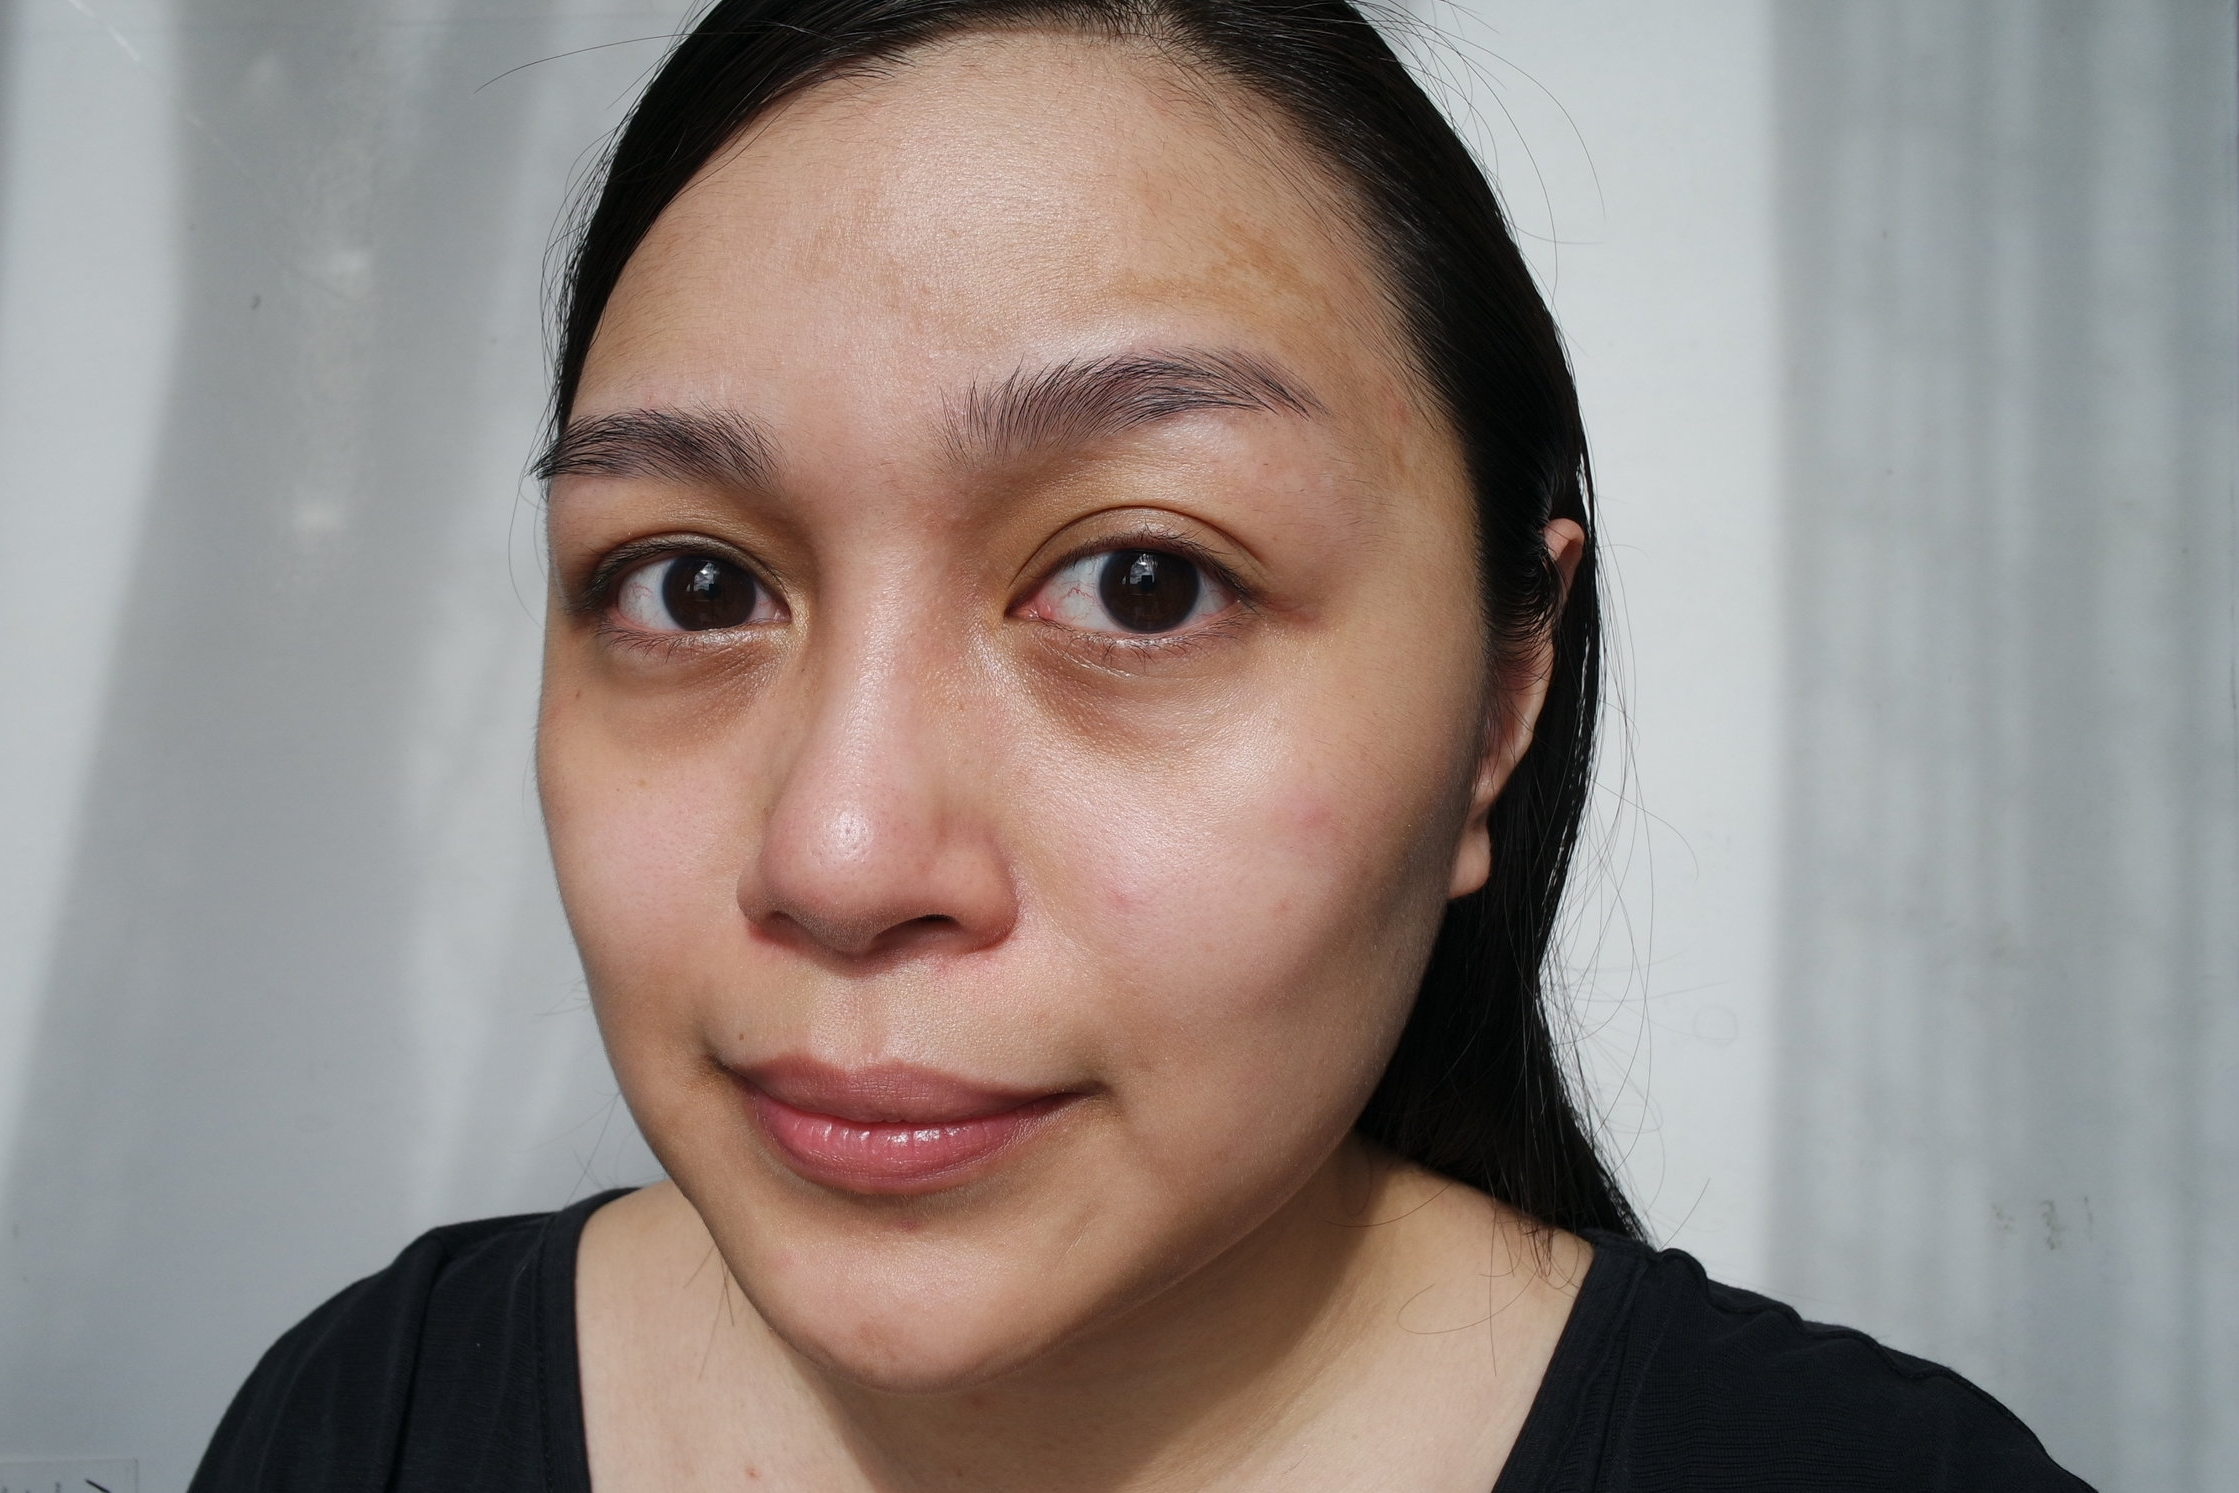 The primer actually feels moisturizing enough to use without a separate moisturizer. My skin looks so much smoother, too.